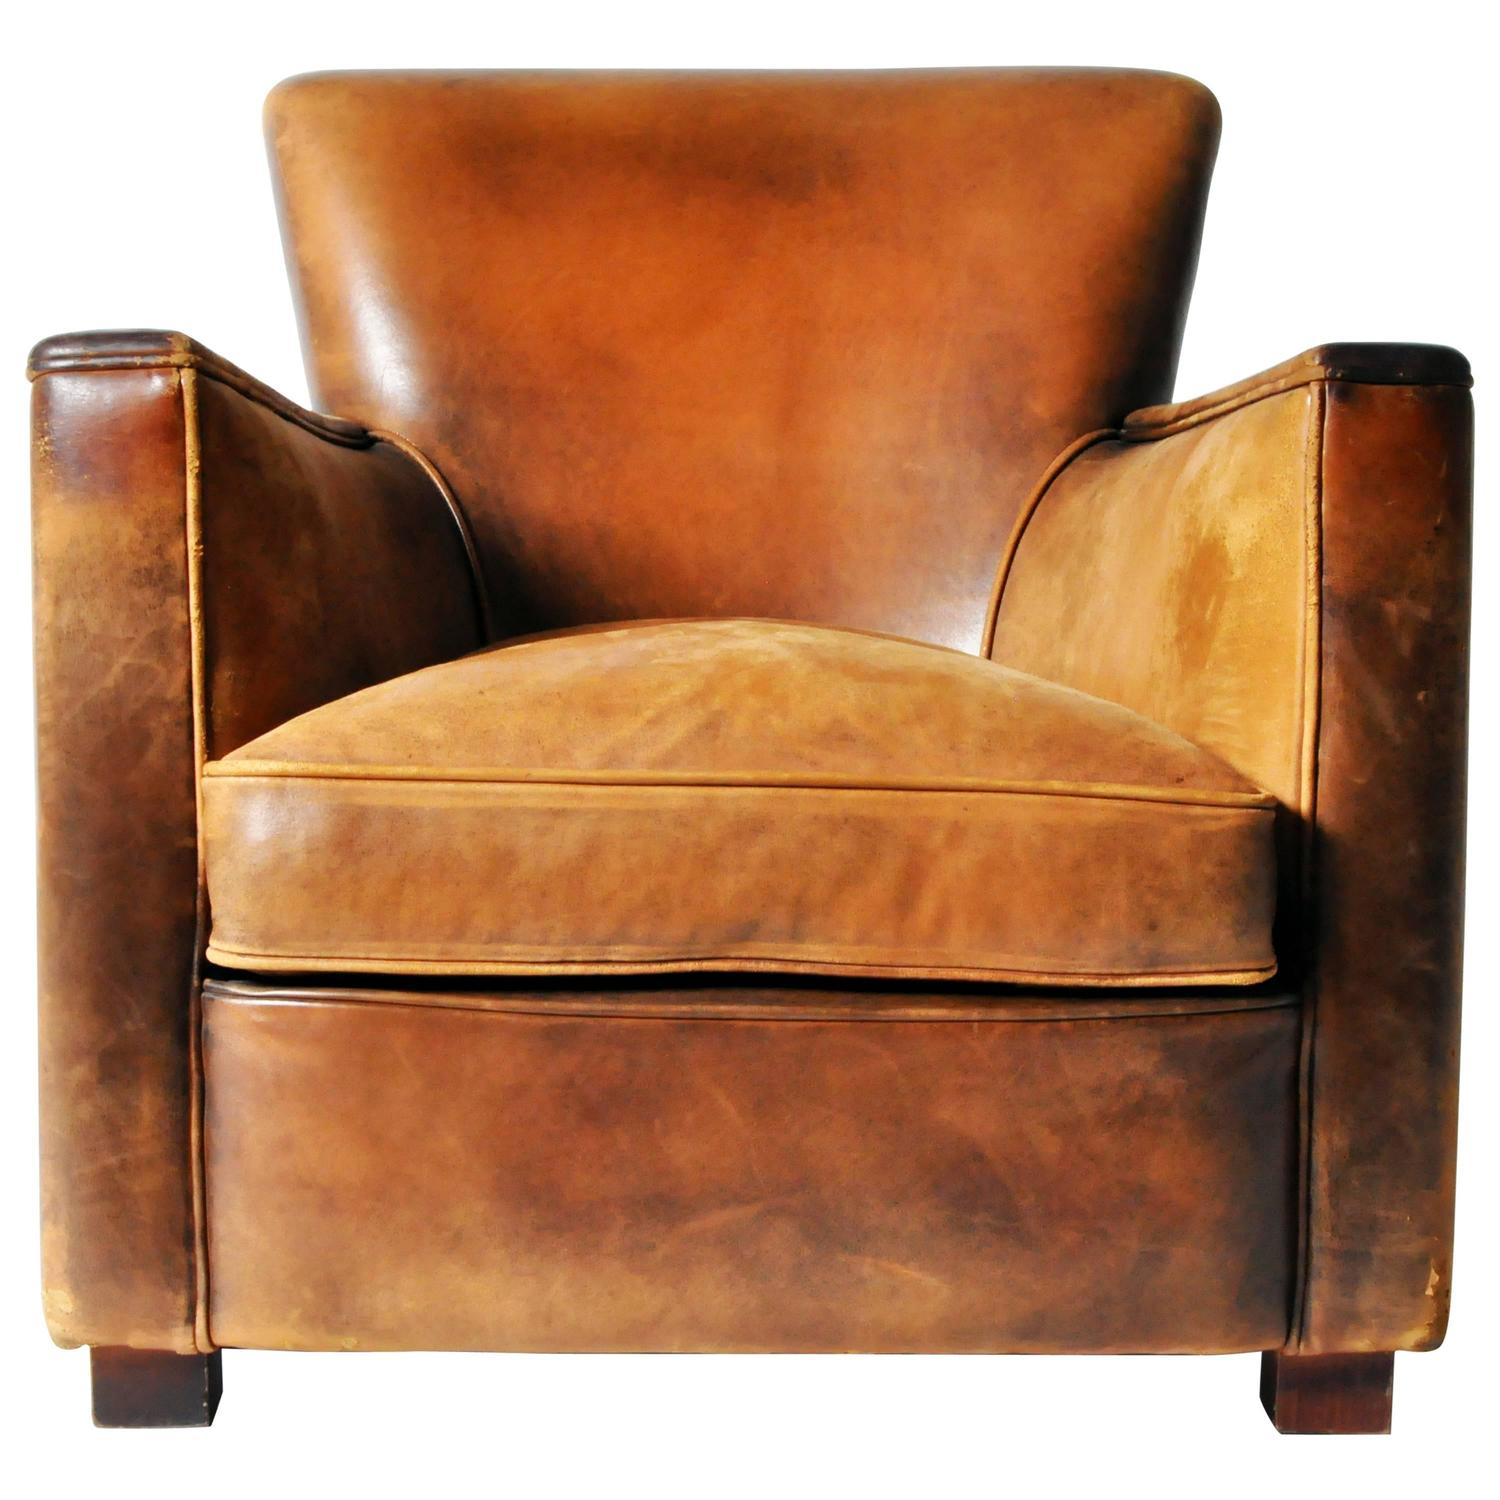 distressed leather club chair distressed leather club chair at 1stdibs 6786